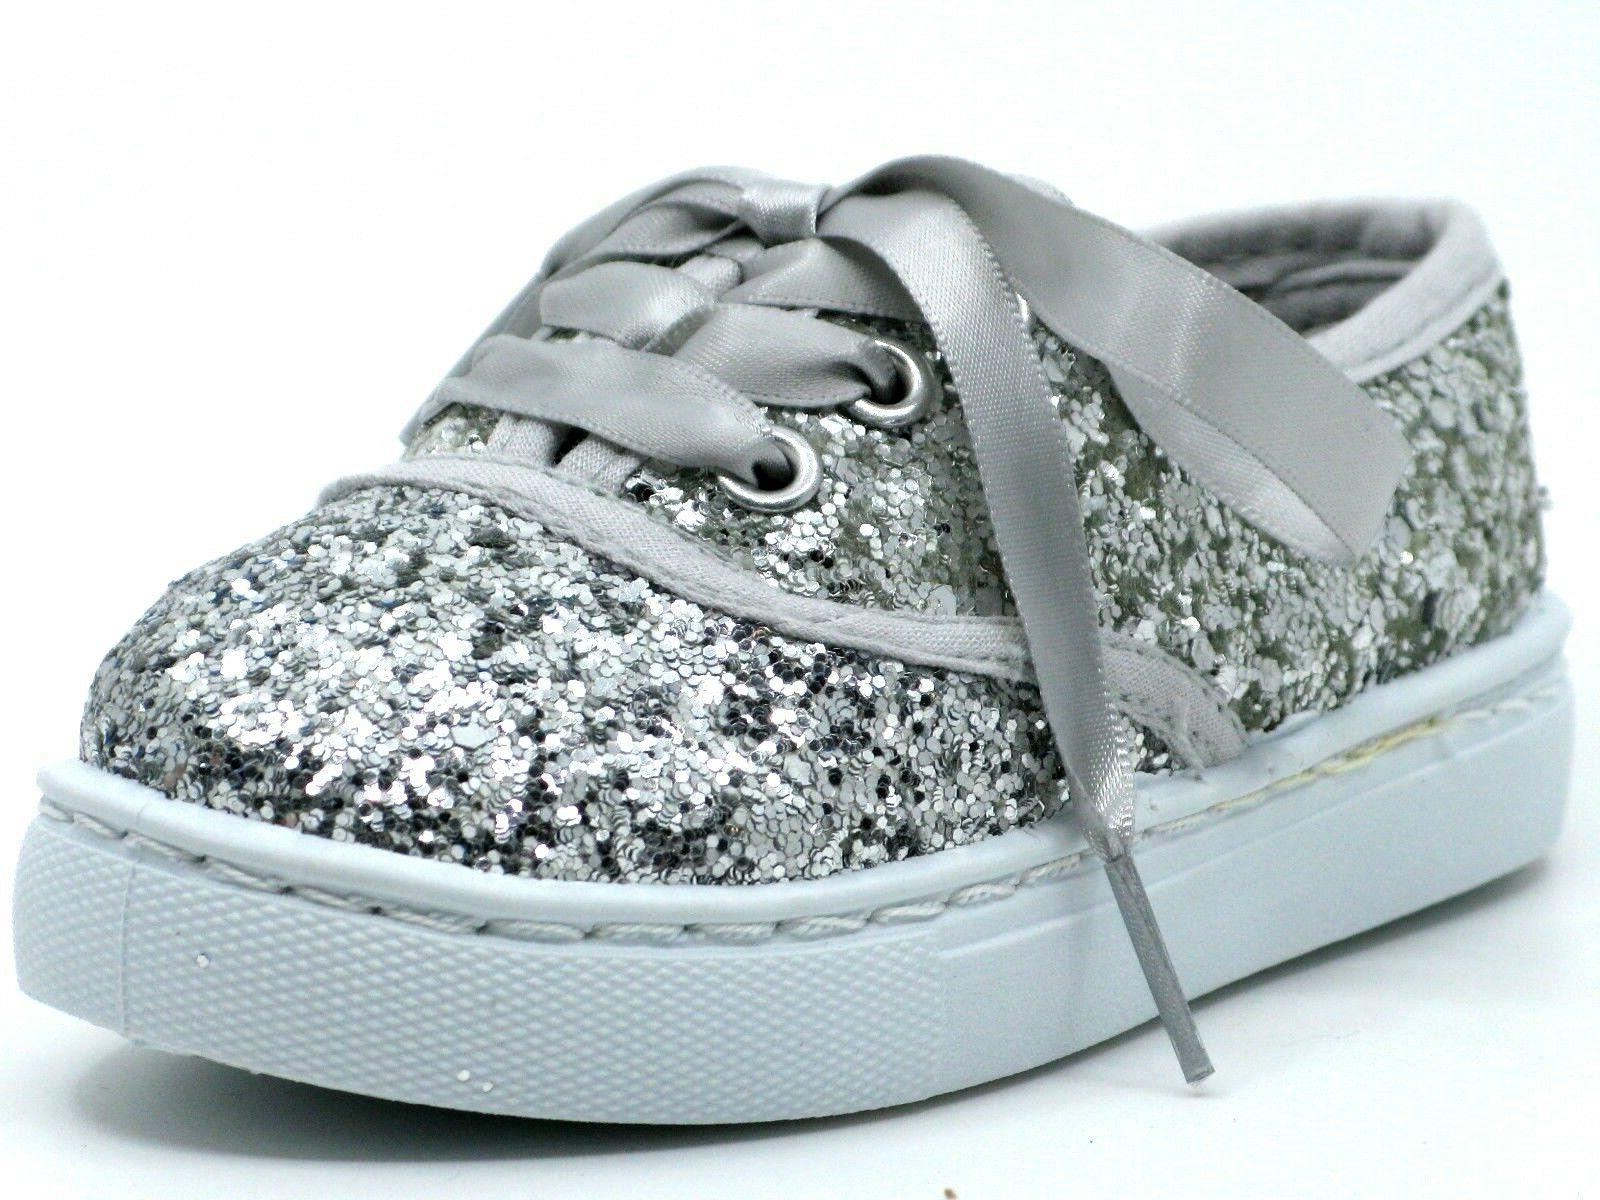 Baby Toddler Glitter Lace Up Fashion Casual Sneakers Sz 6 -11